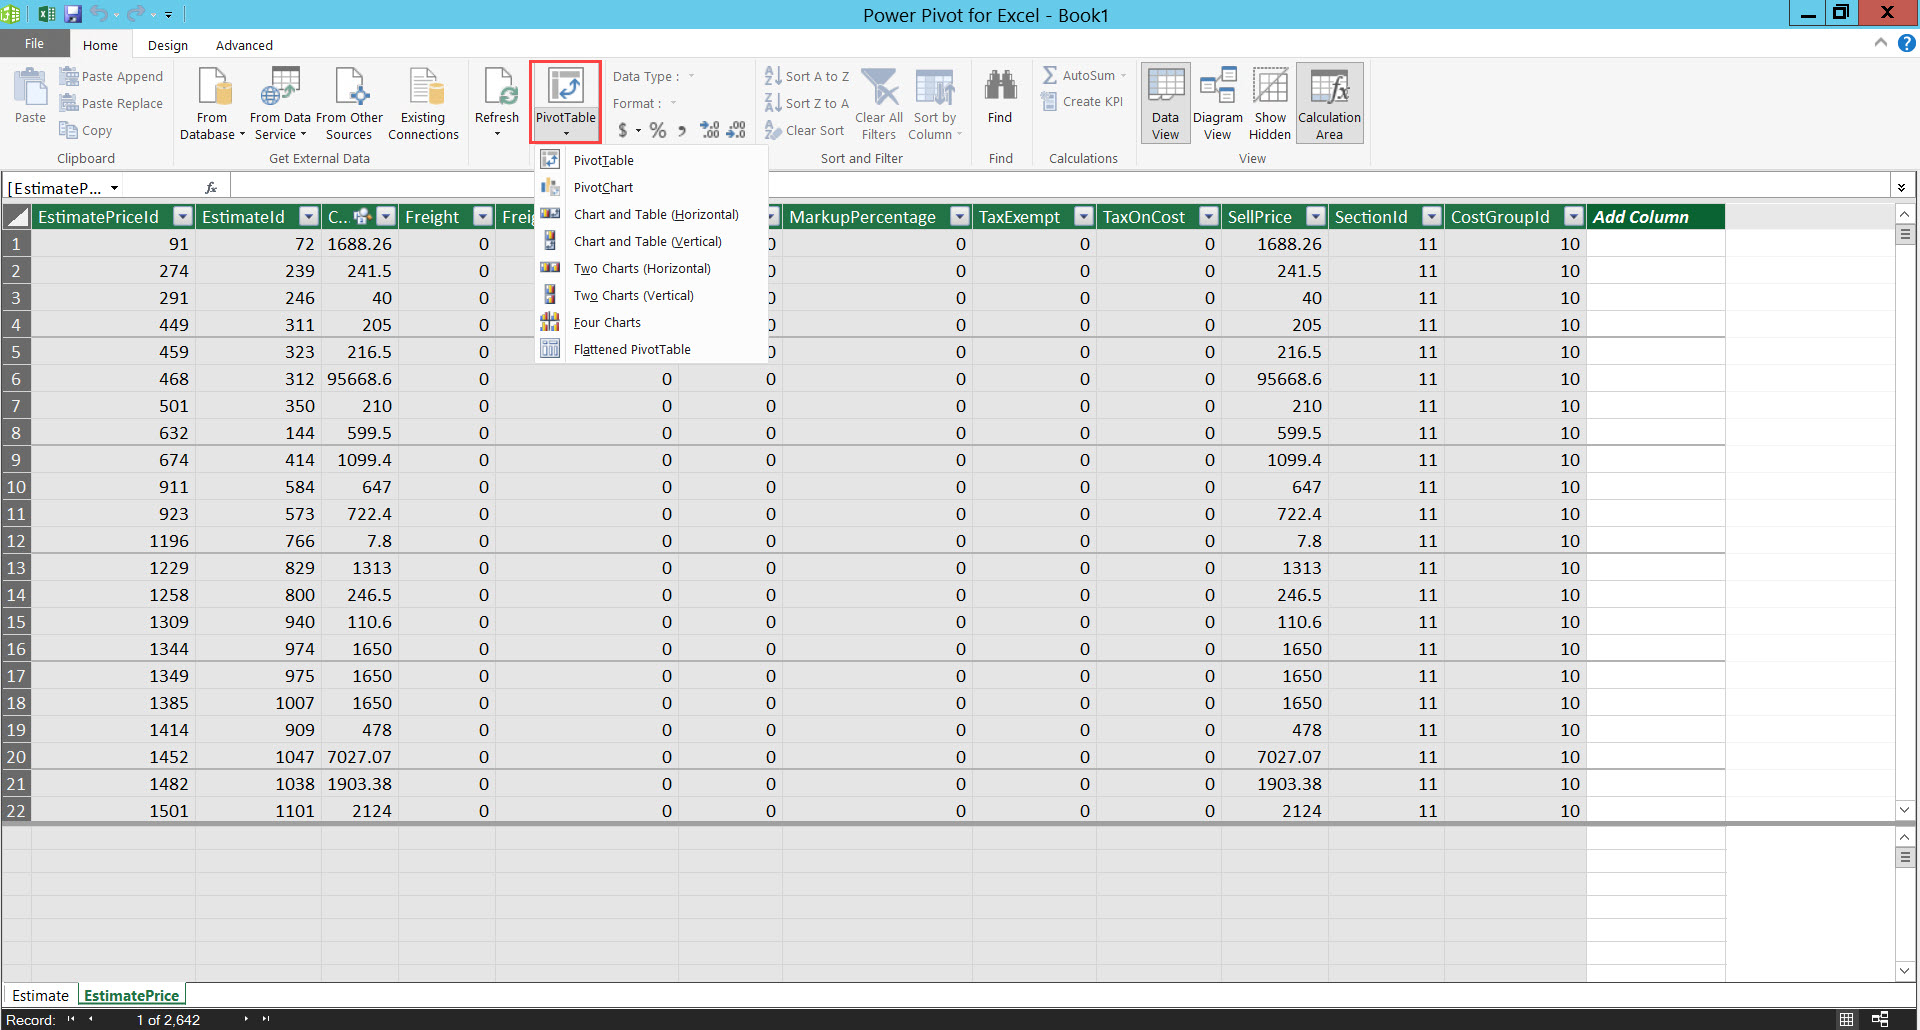 Power Pivot for Excel workbook; shows the PivotTable drop-down menu.